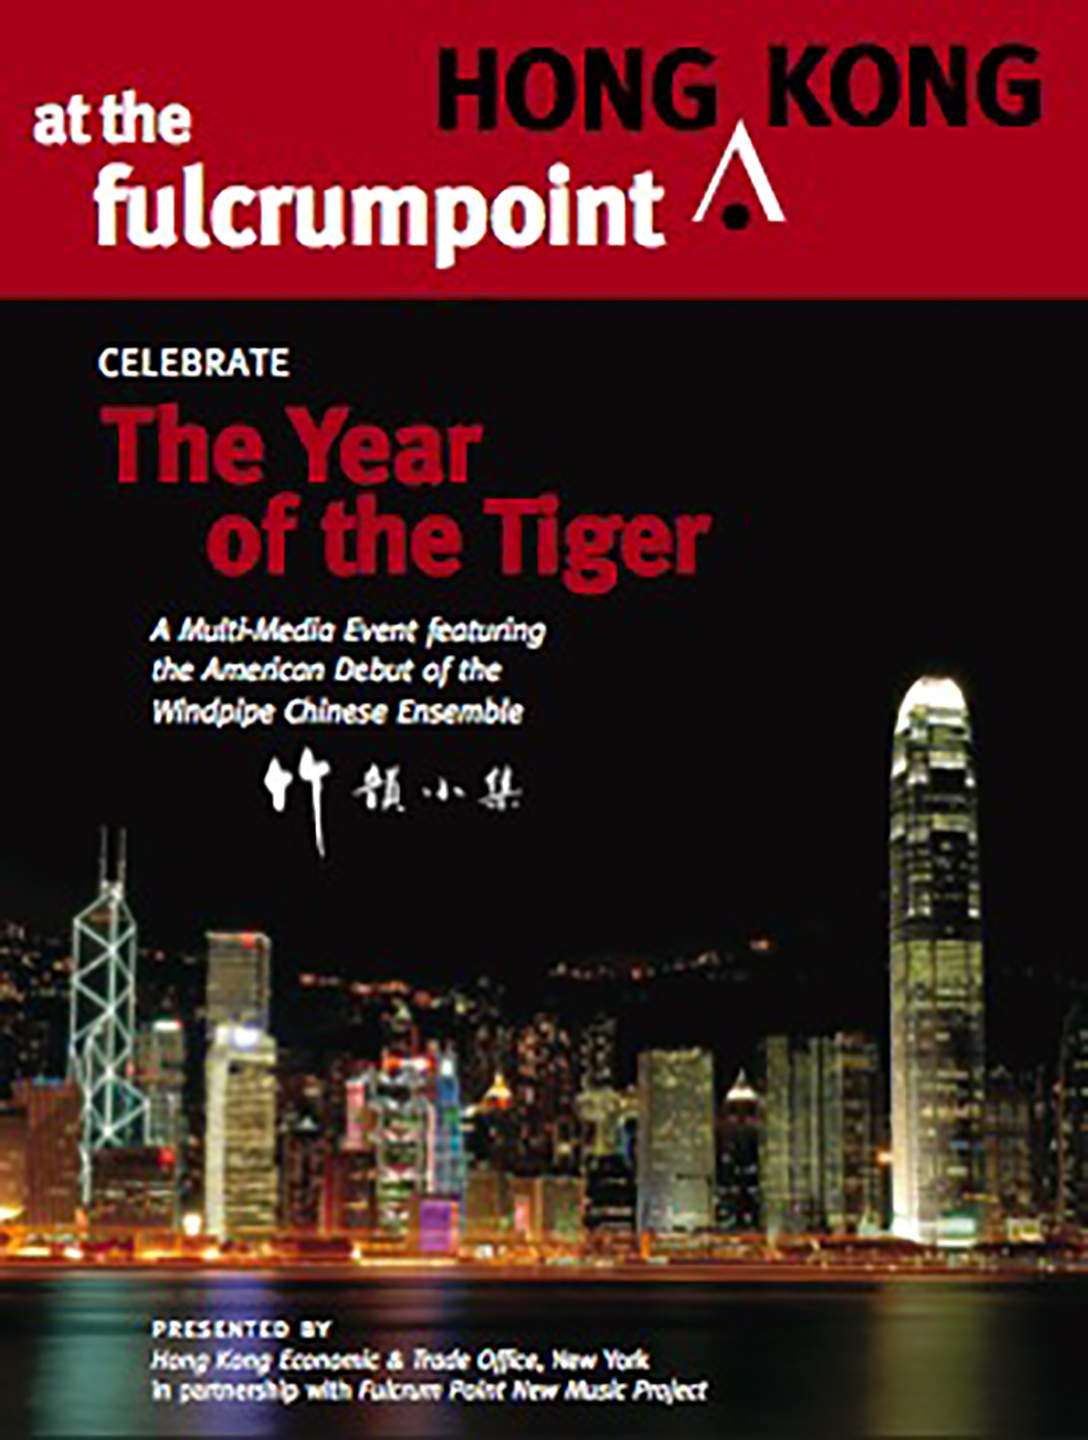 Hong Kong at the Fulcrum Point Celebrates the Year of the Tiger!